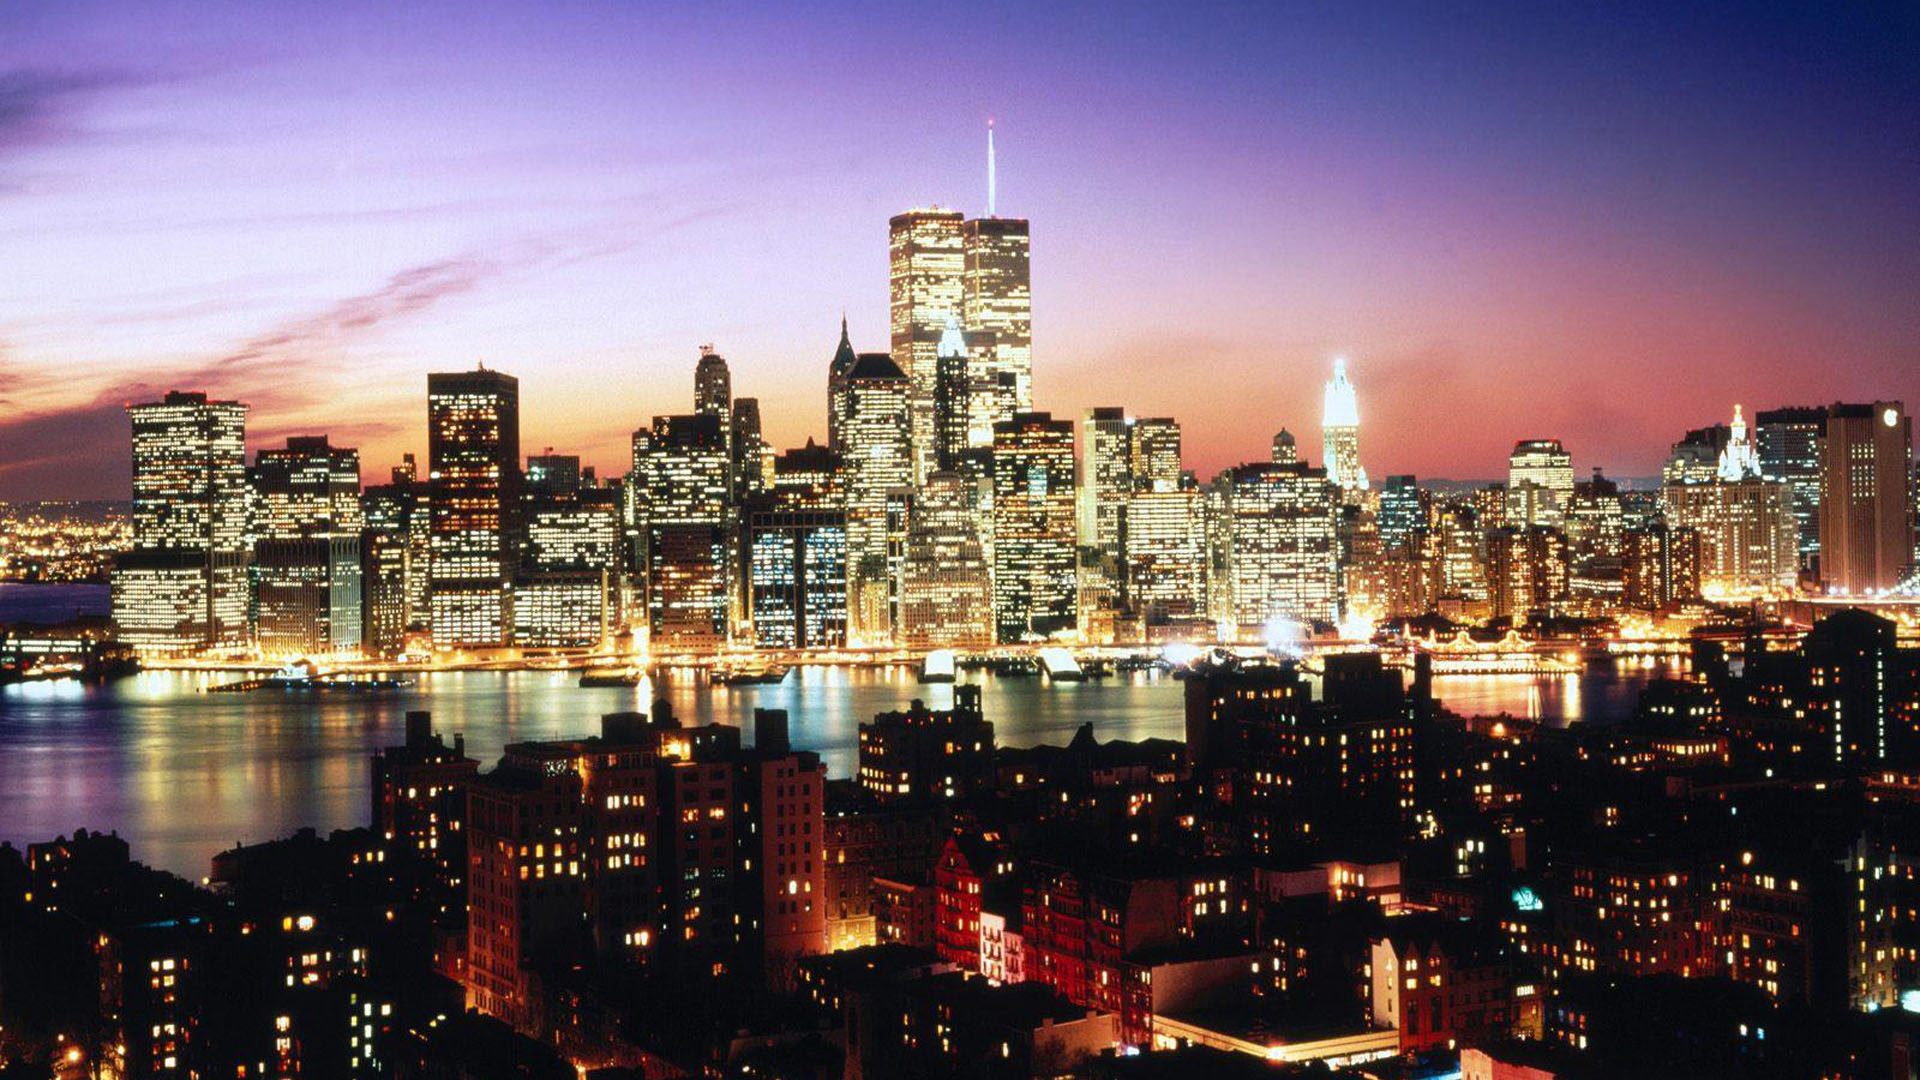 NYC Wallpapers HD 40 Wallpapers – Adorable Wallpapers